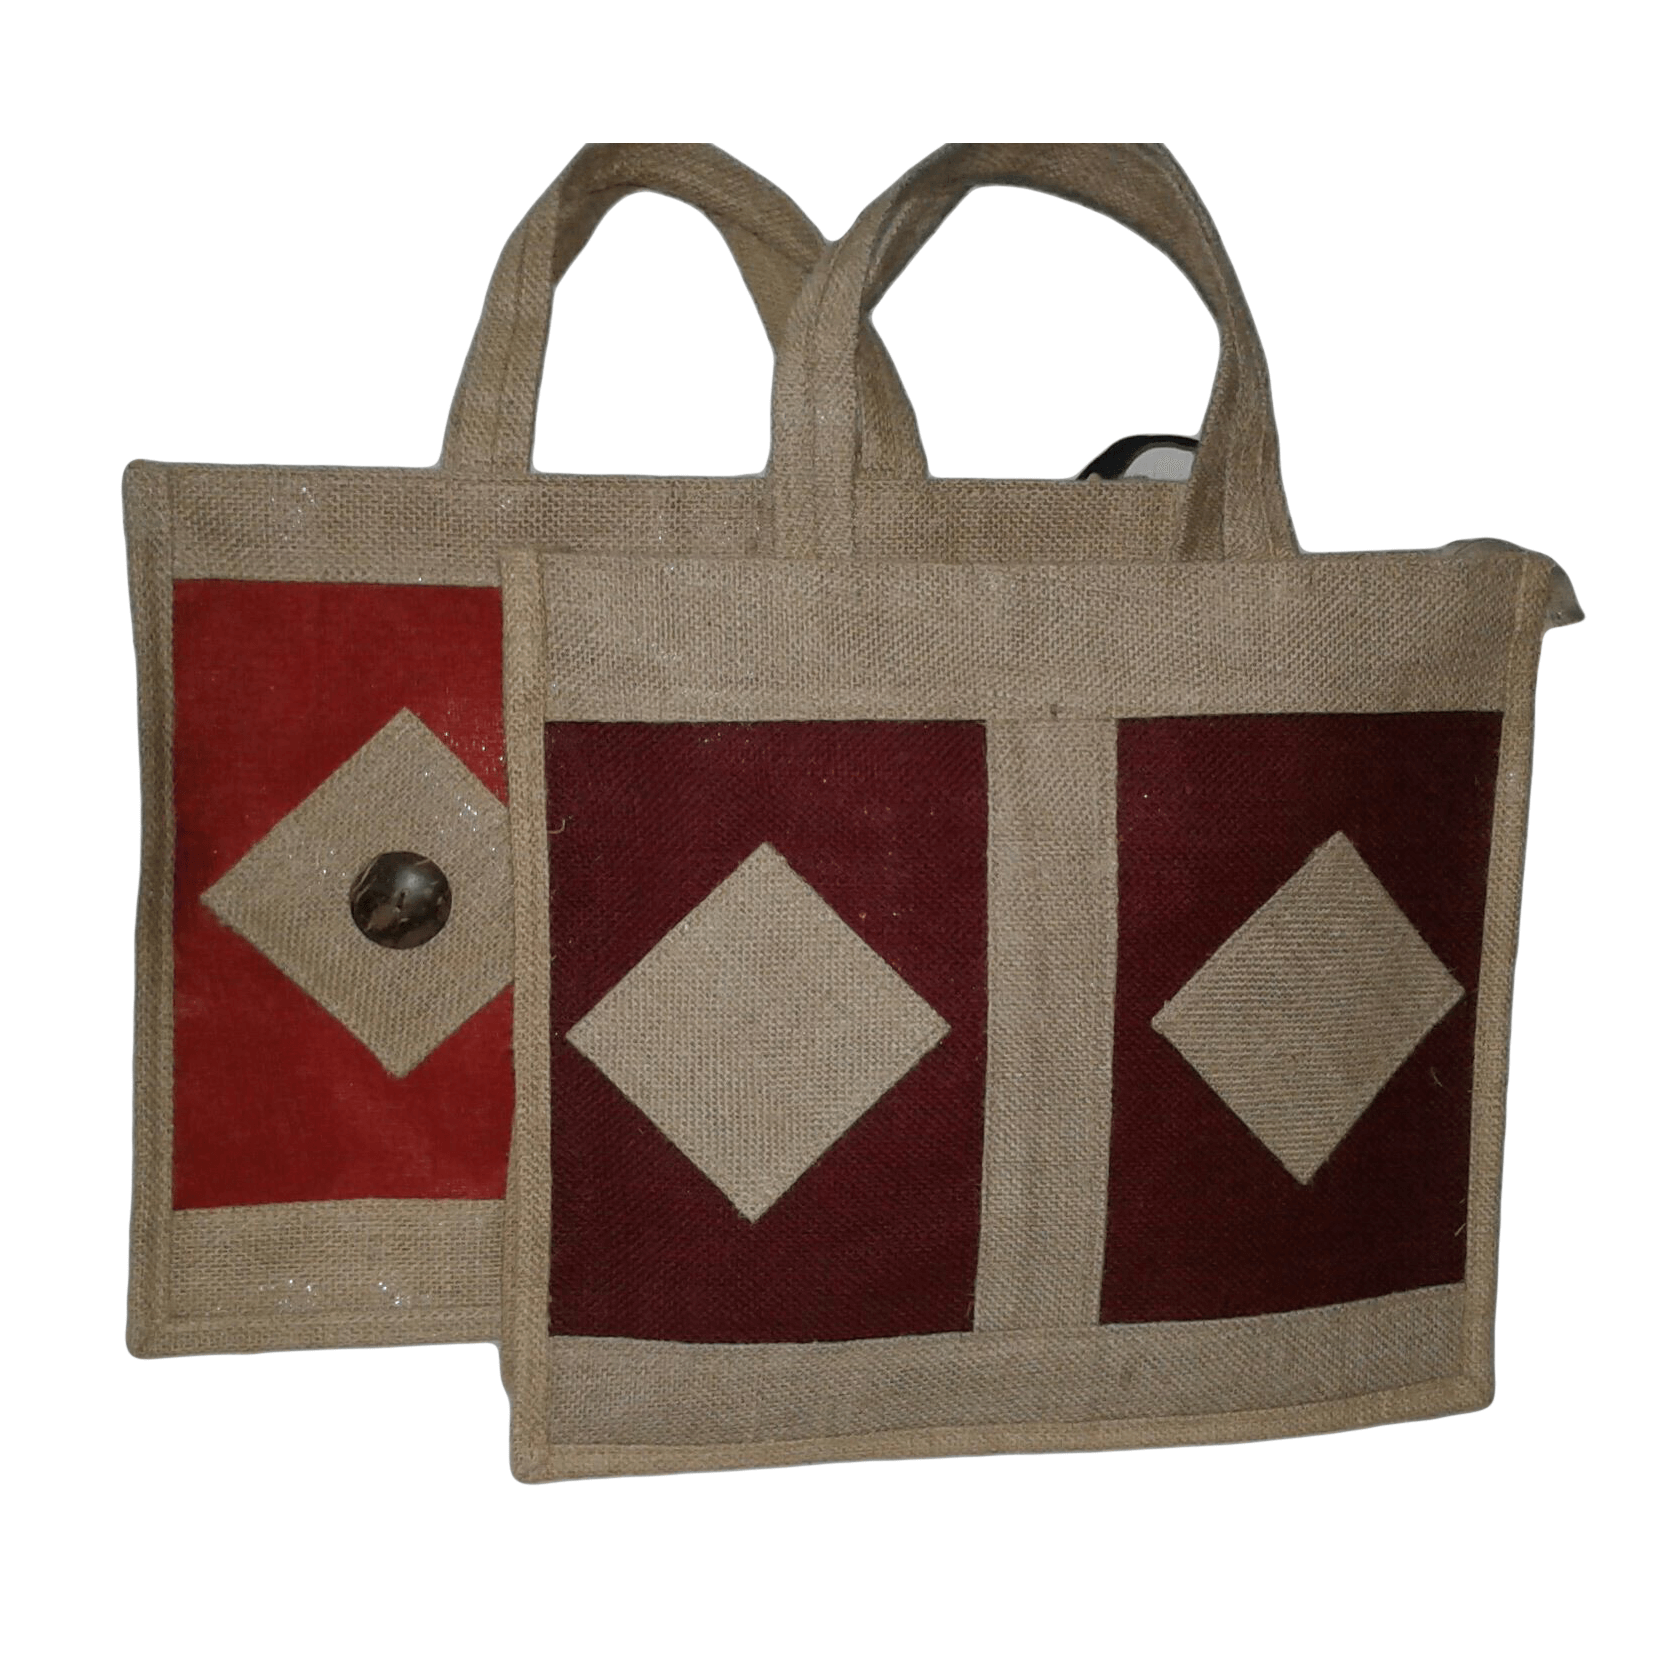 Dual Colored Jute Shopping Bag,Made In Bangladesh